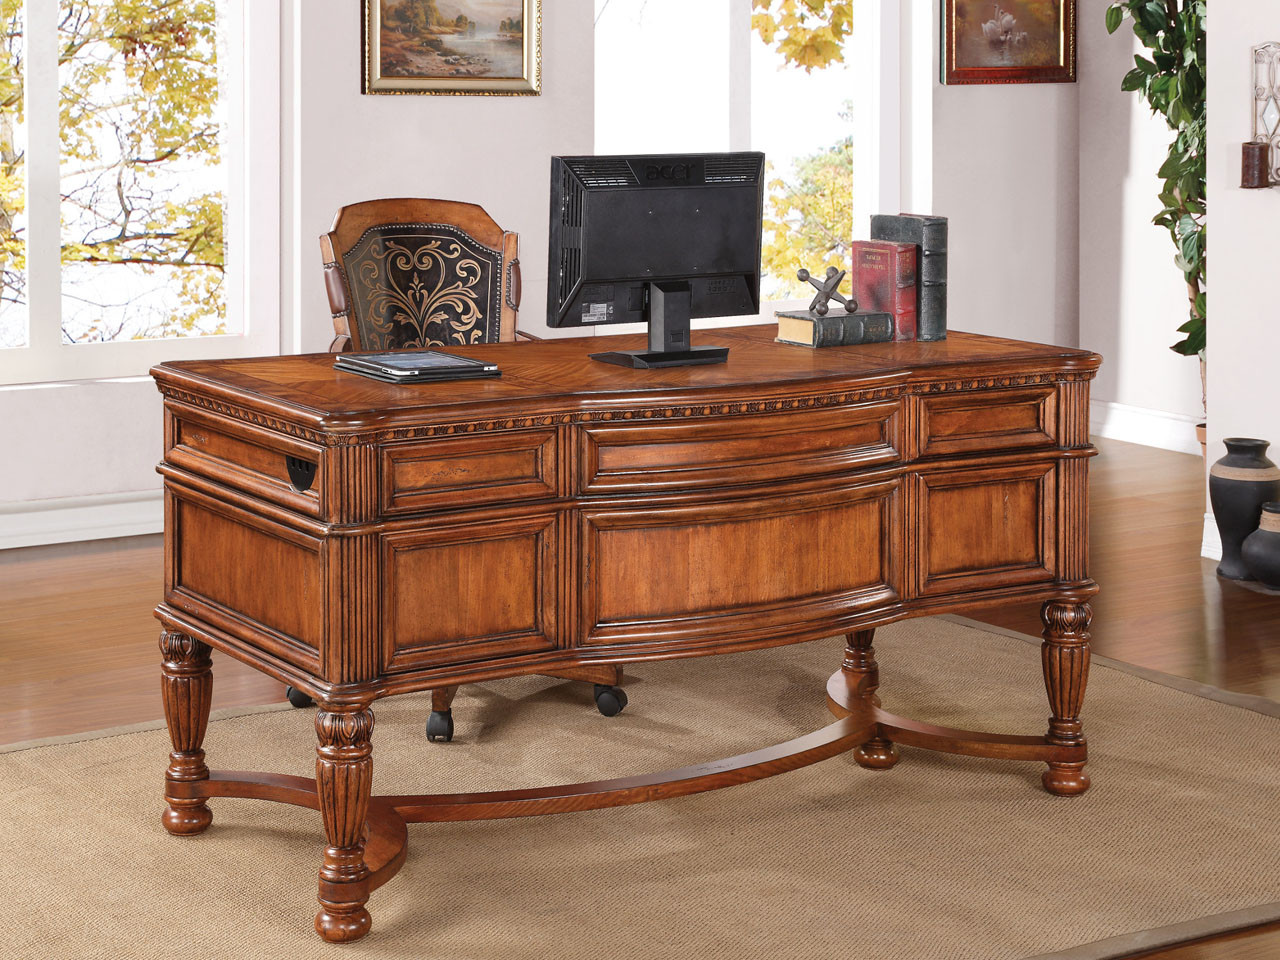 Turn of the century furniture - Writing Desk Understated Elegance Meets Turn Of The Century Splendor Cordoba Makes